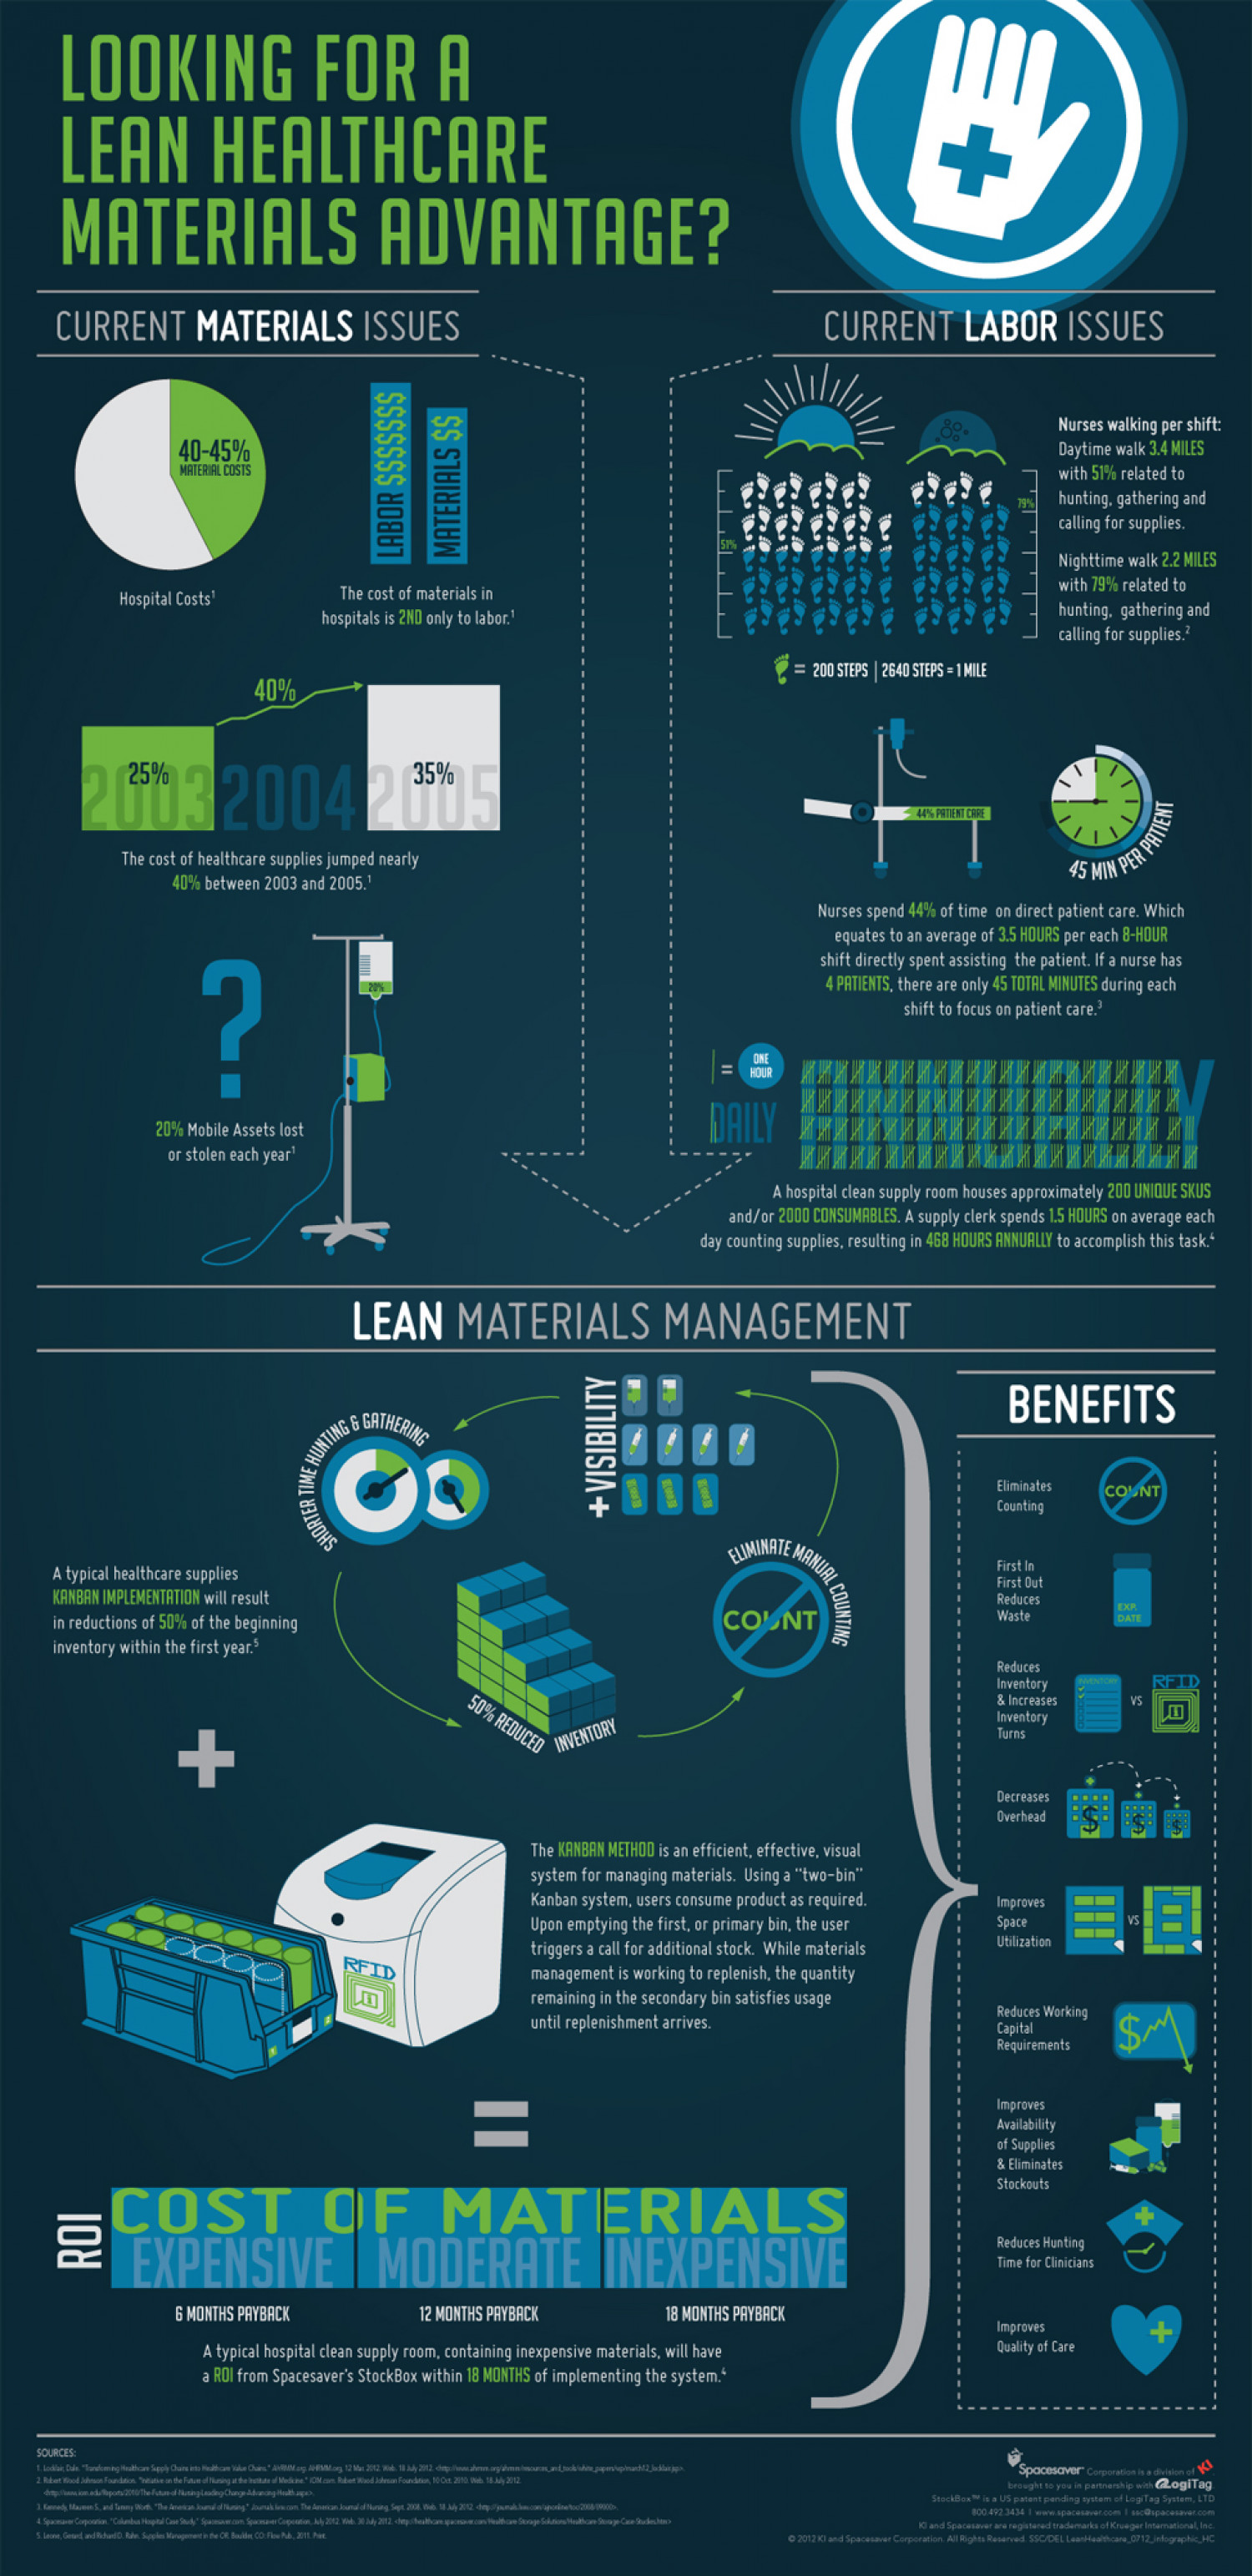 Looking For A Lean Healthcare Materials Advantage? Infographic